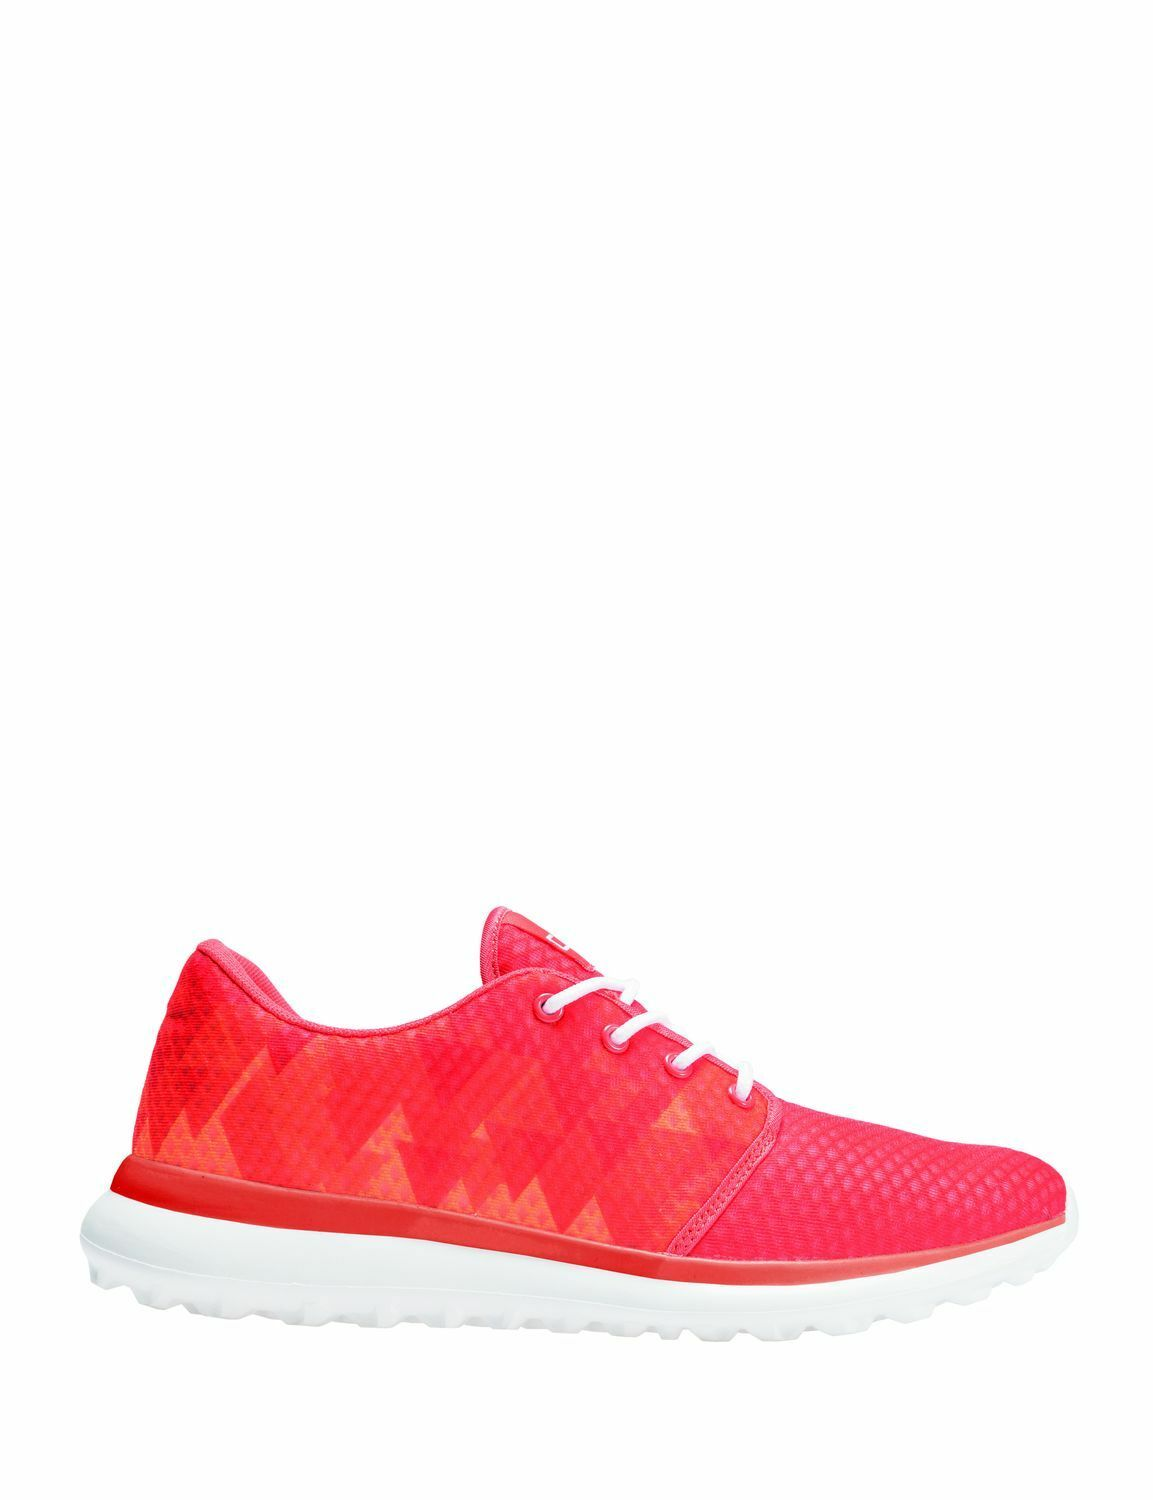 CMP Trainers Running shoes Casual shoes orange Chameleon  Breathable  best quality best price